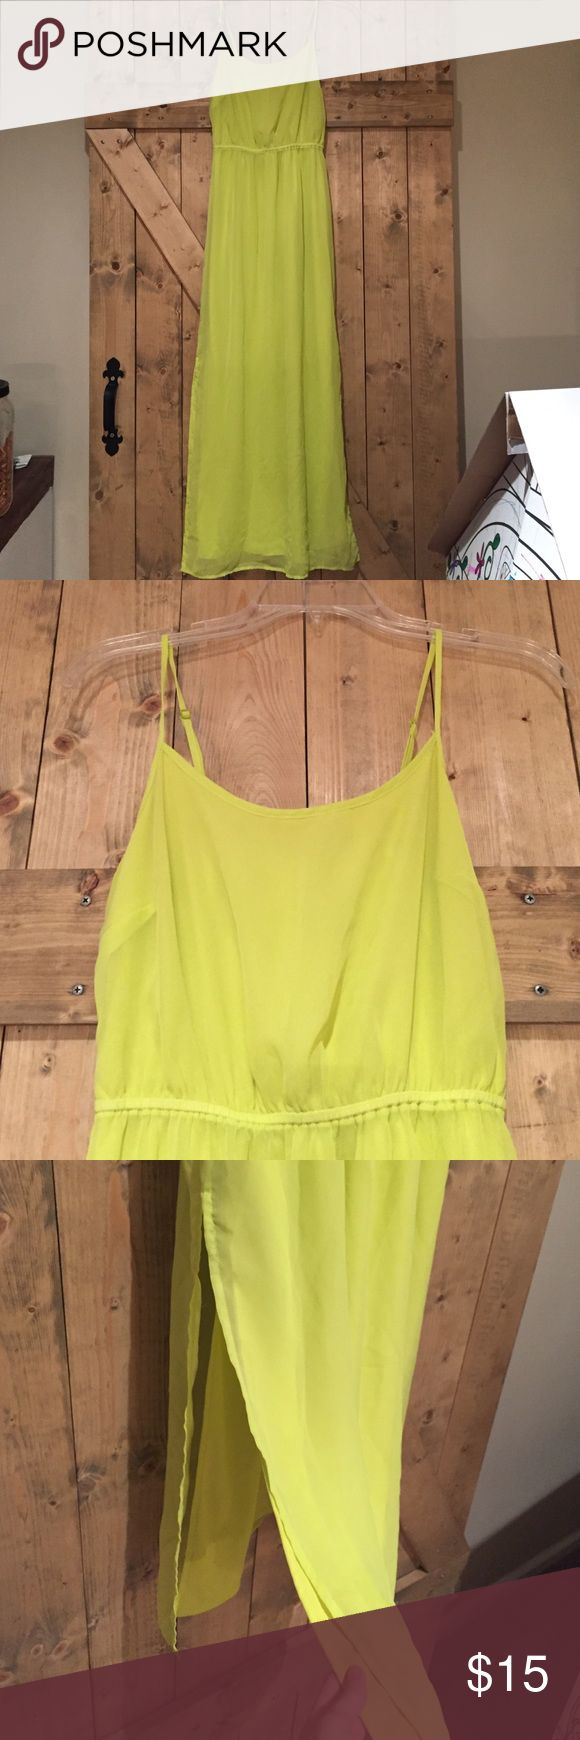 Neon Yellow Dress Perfect condition! Very bright highlighter color. Cinched waist and slits up to the knee on both sides. Adjustable straps. Old Navy Dresses Maxi